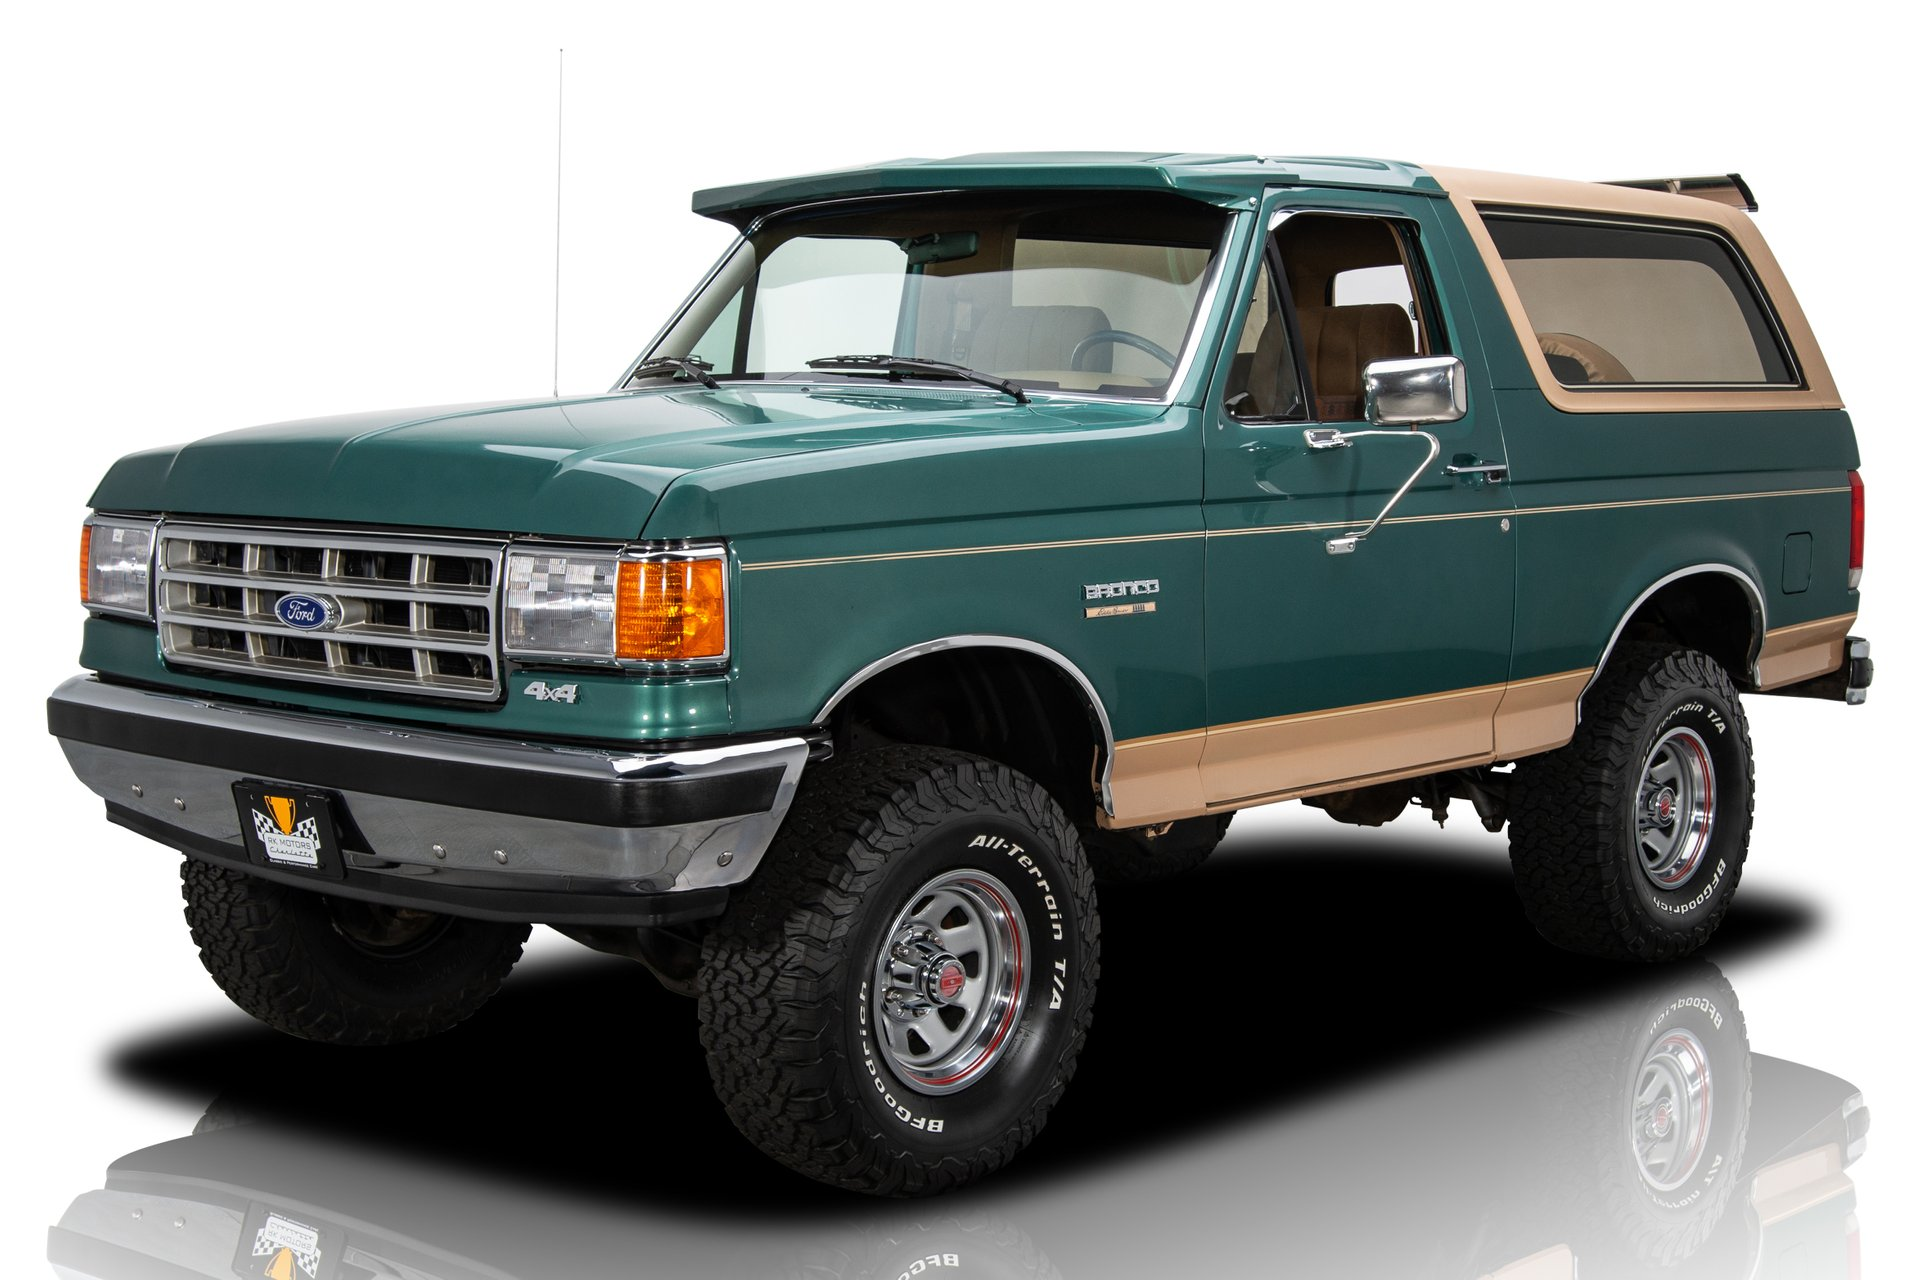 1988 ford bronco eddie bauer edition